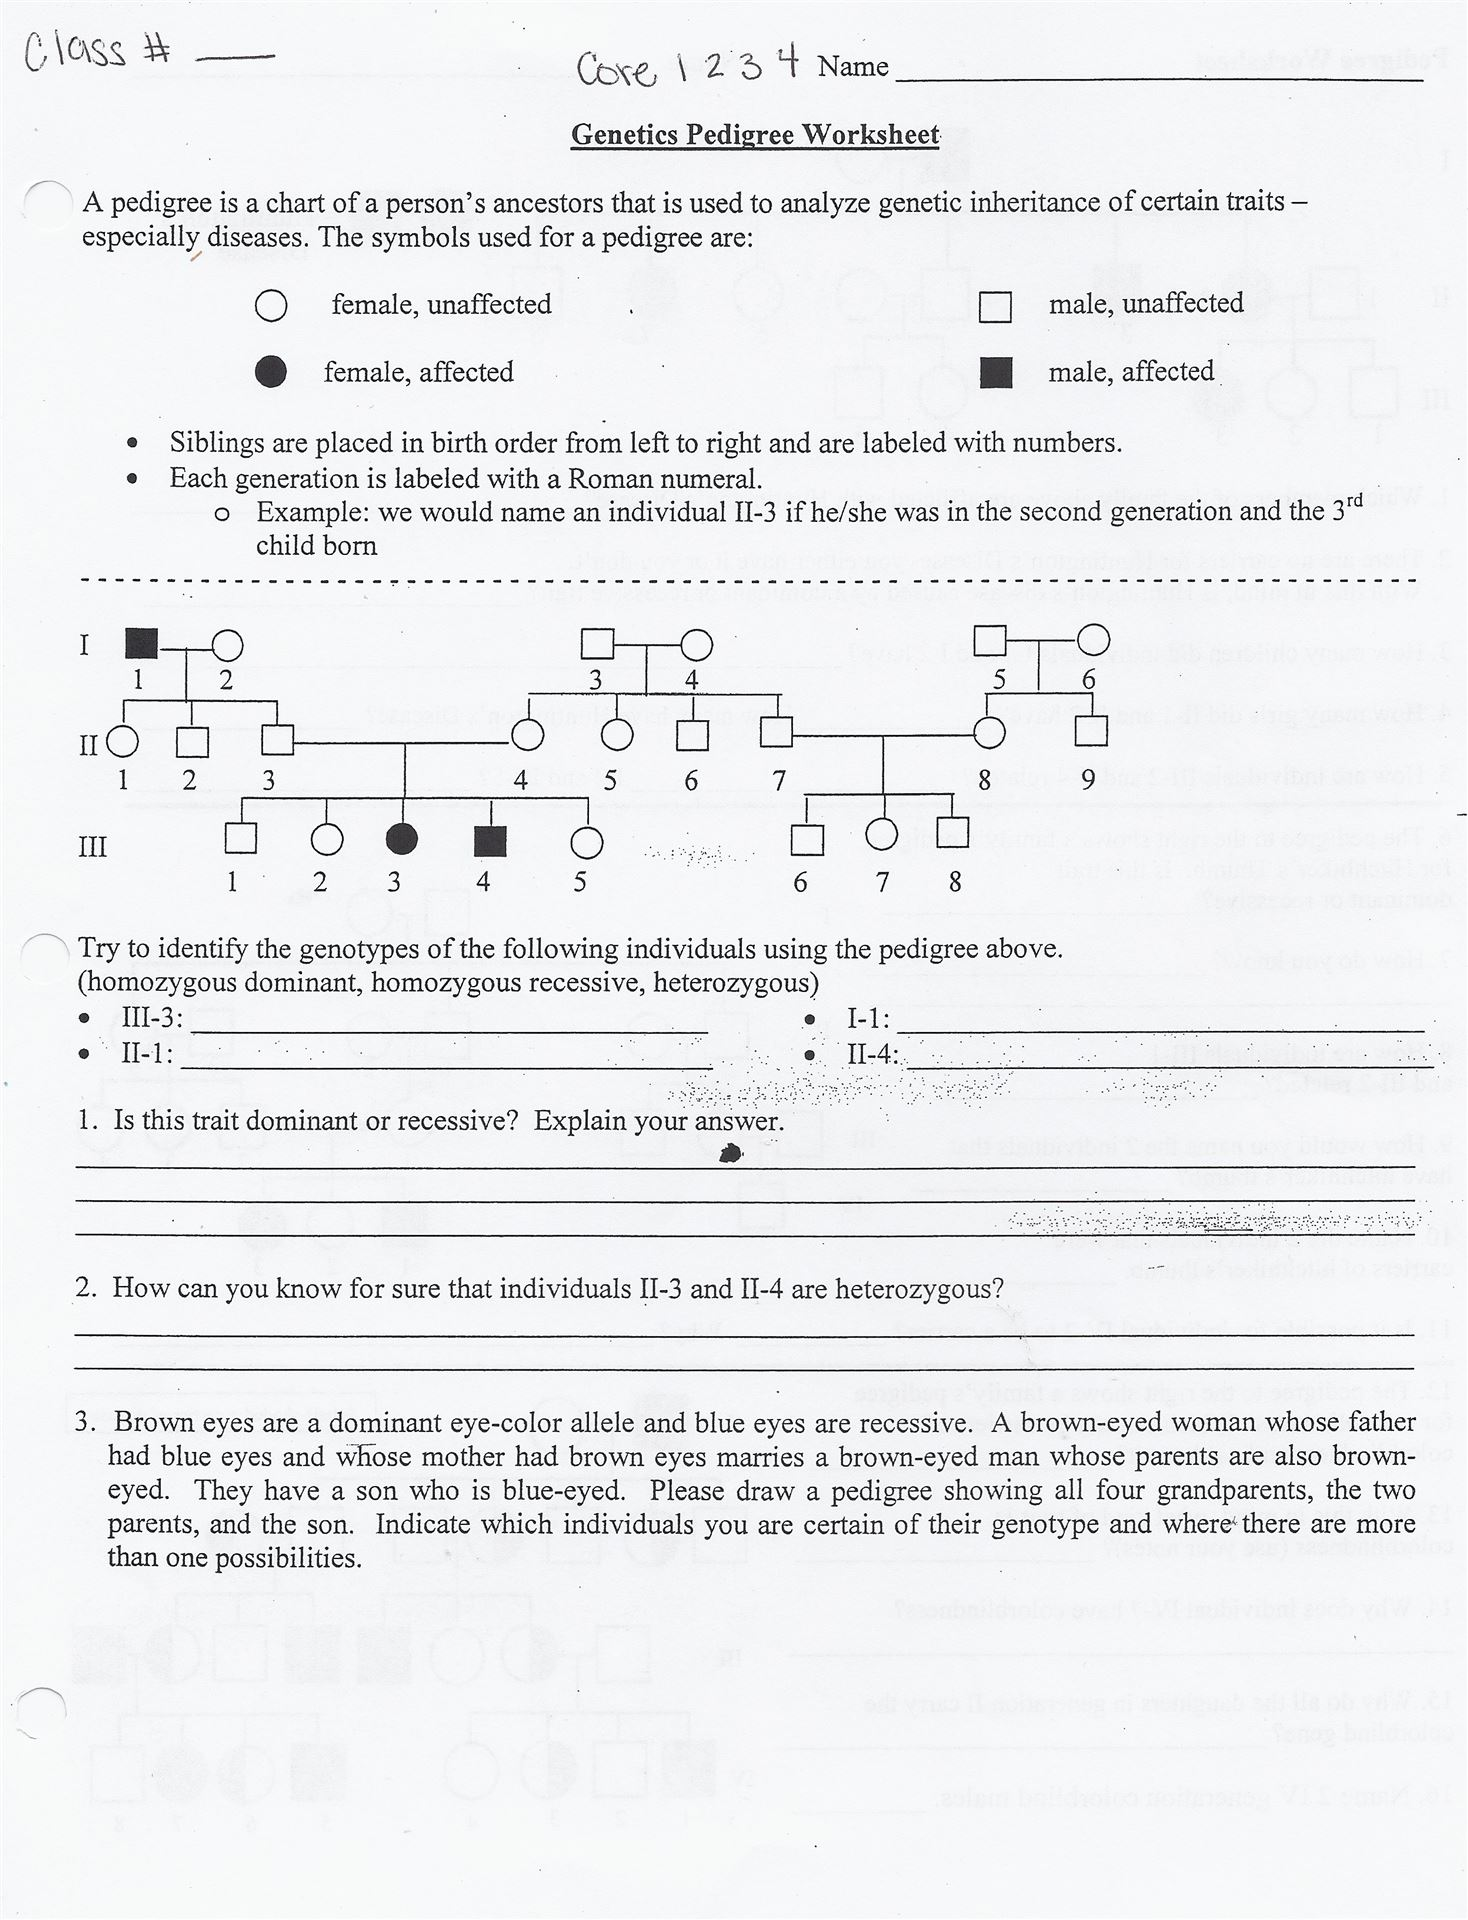 worksheet Genetic Pedigree Worksheet pedigree worksheet humorholics genetics humorholics